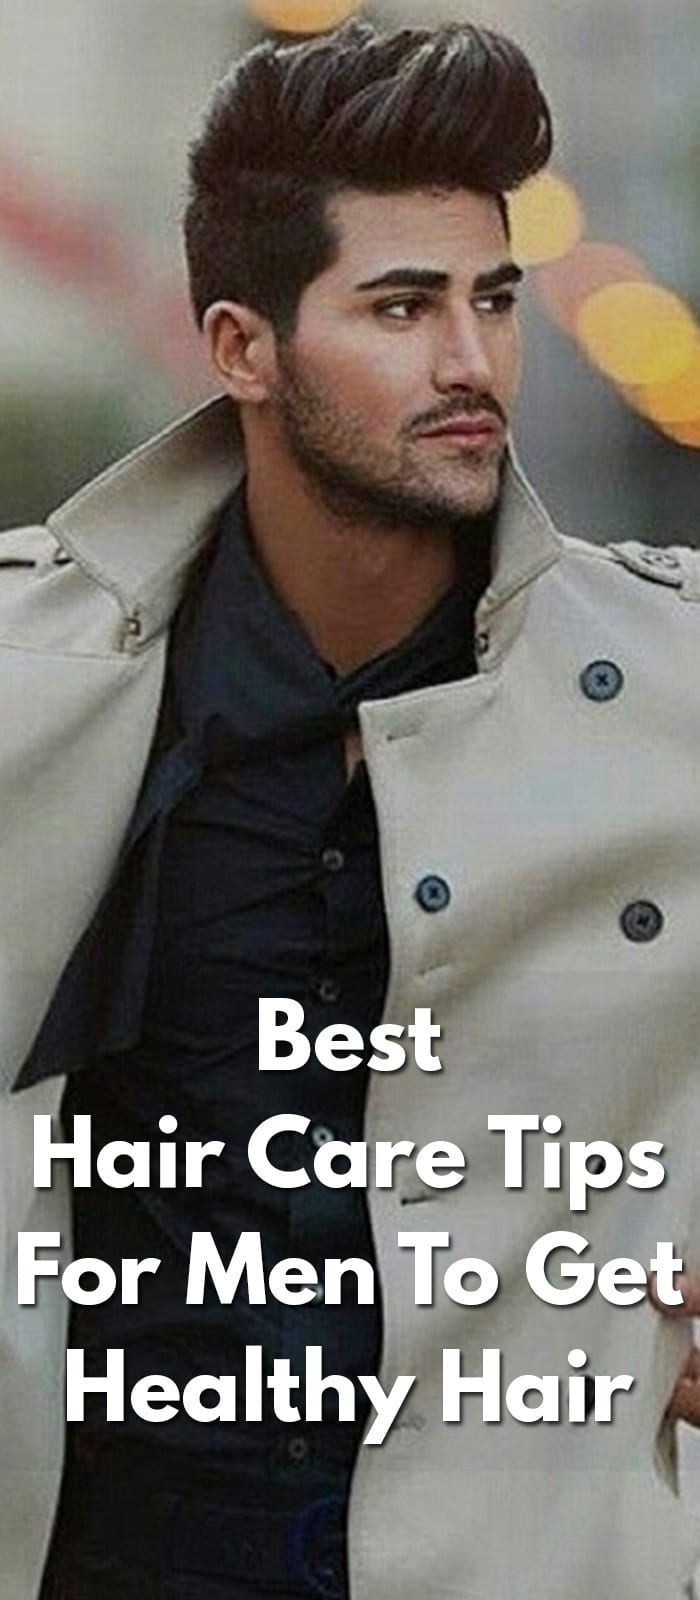 Best-Hair-Care-Tips-For-Men-To-Get-Healthy-Hair